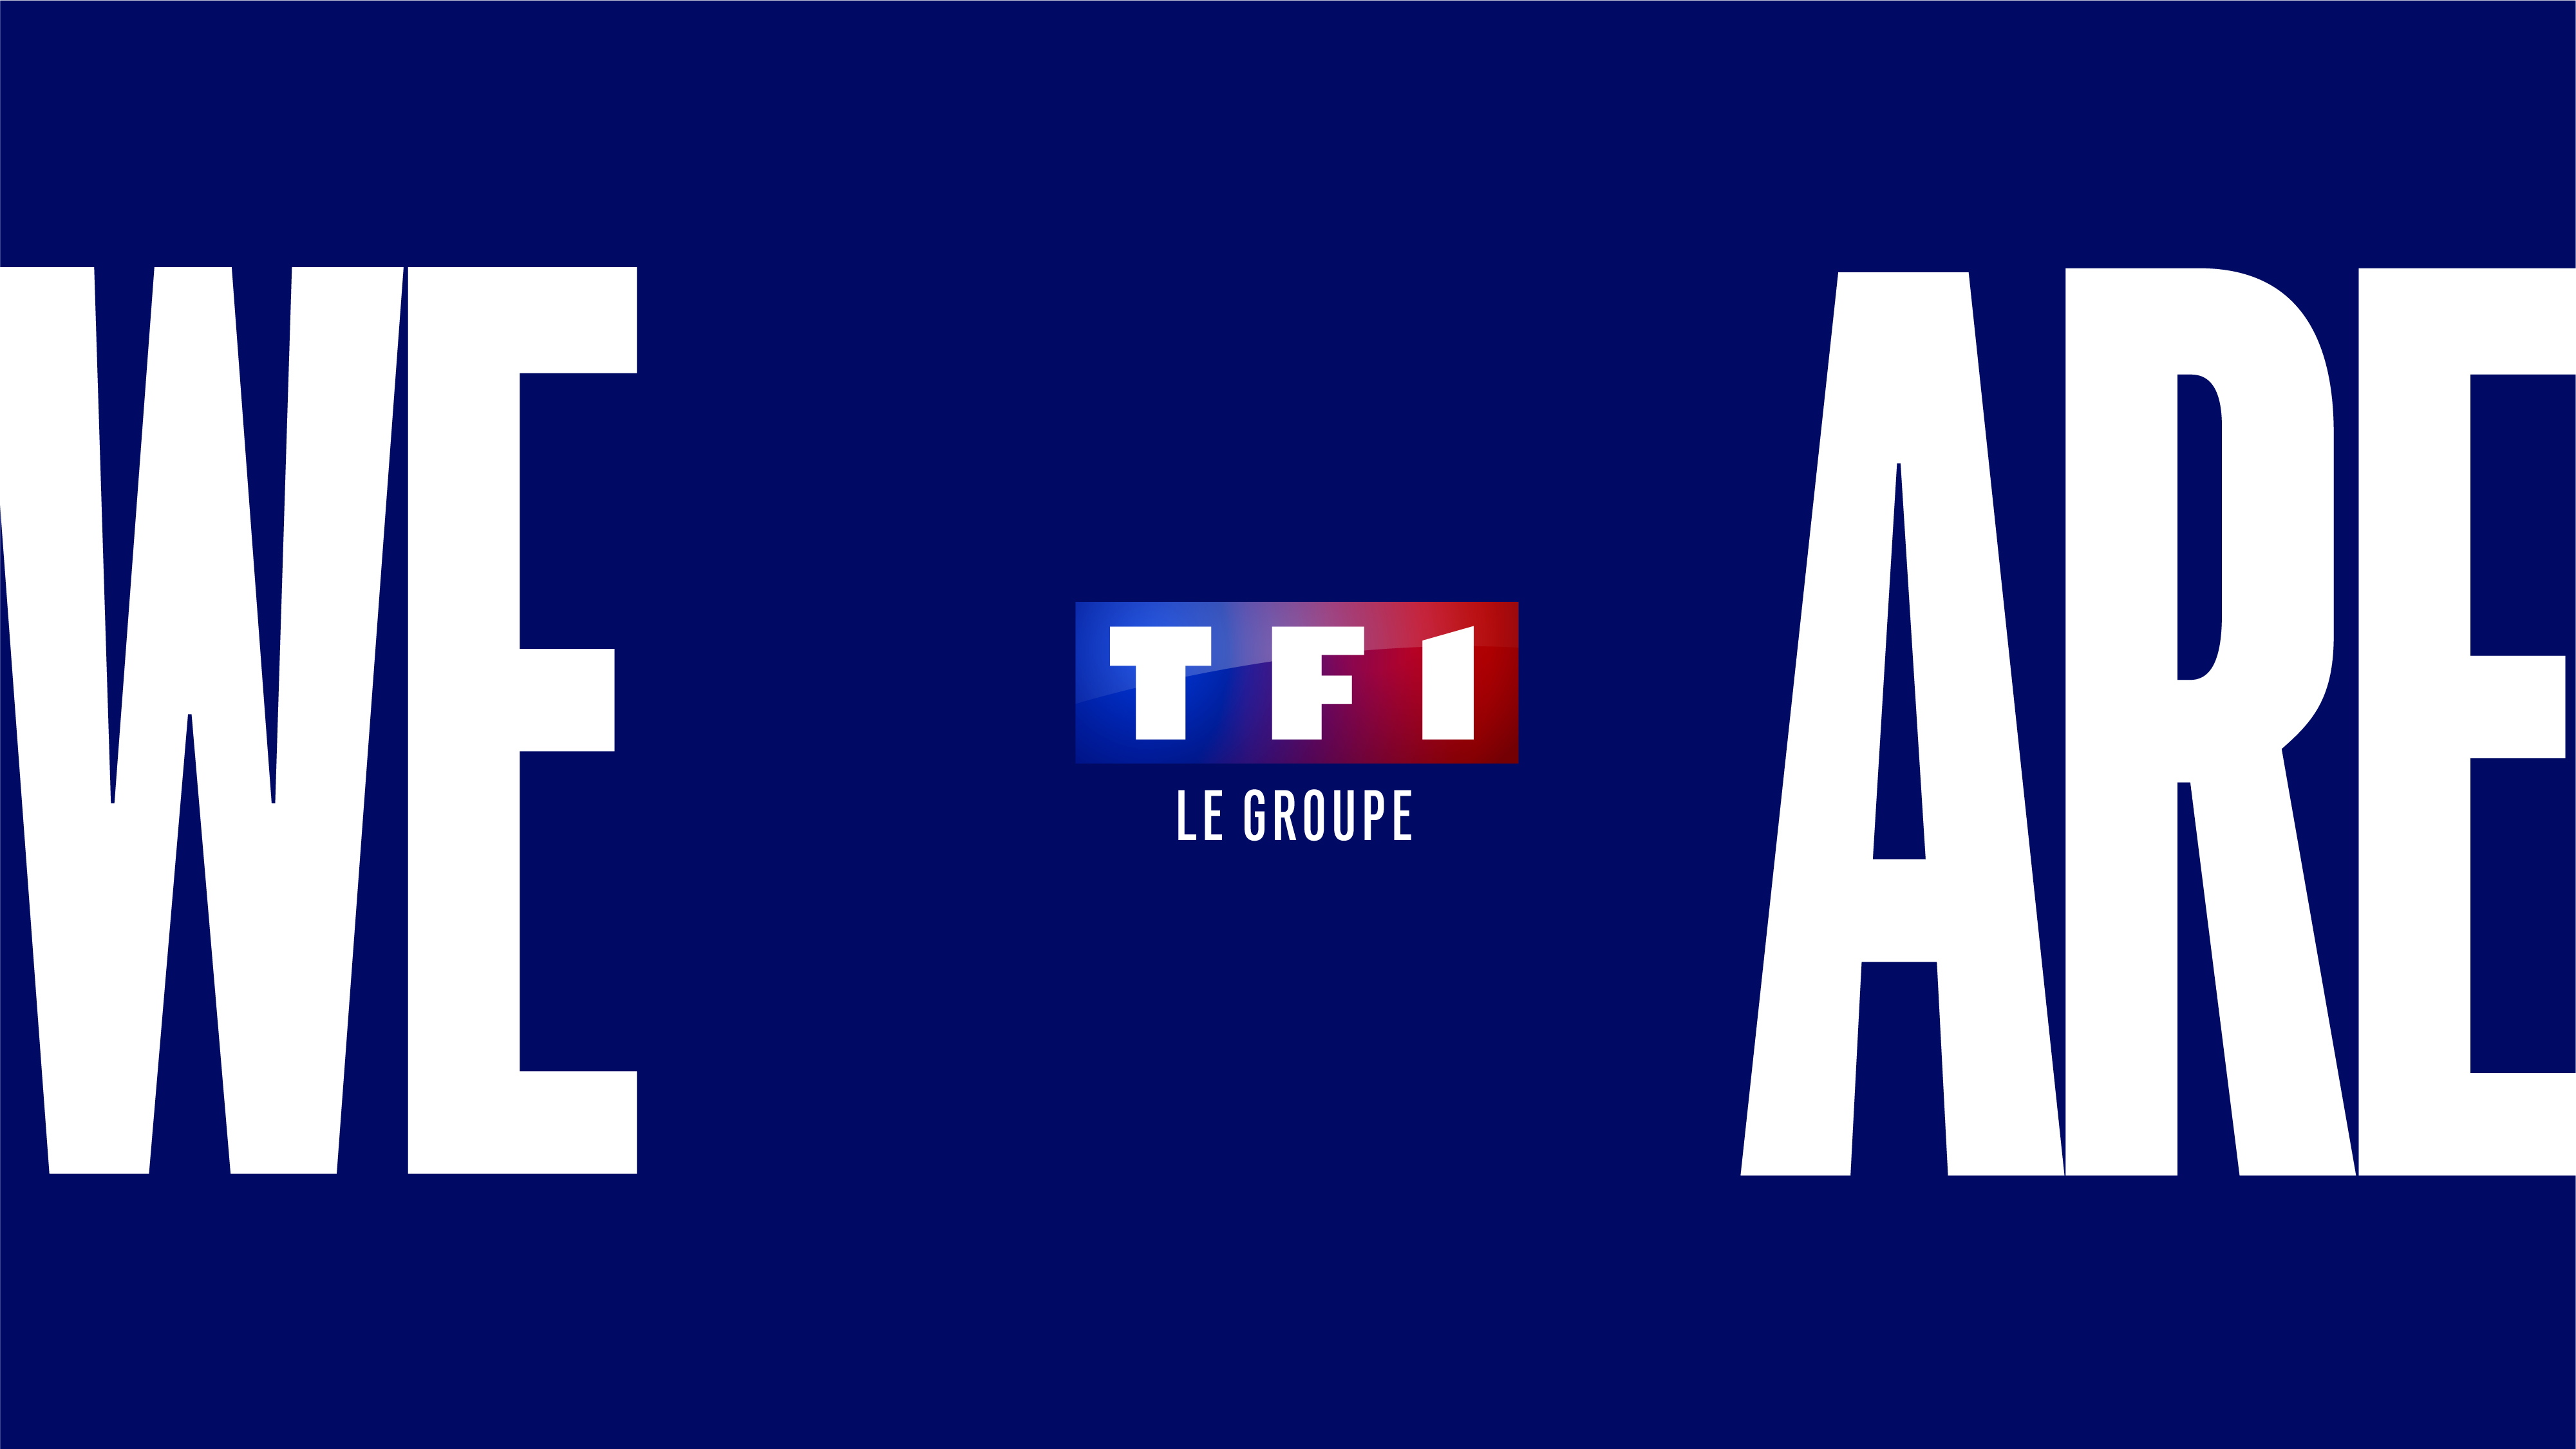 We are TF1 Le Groupe